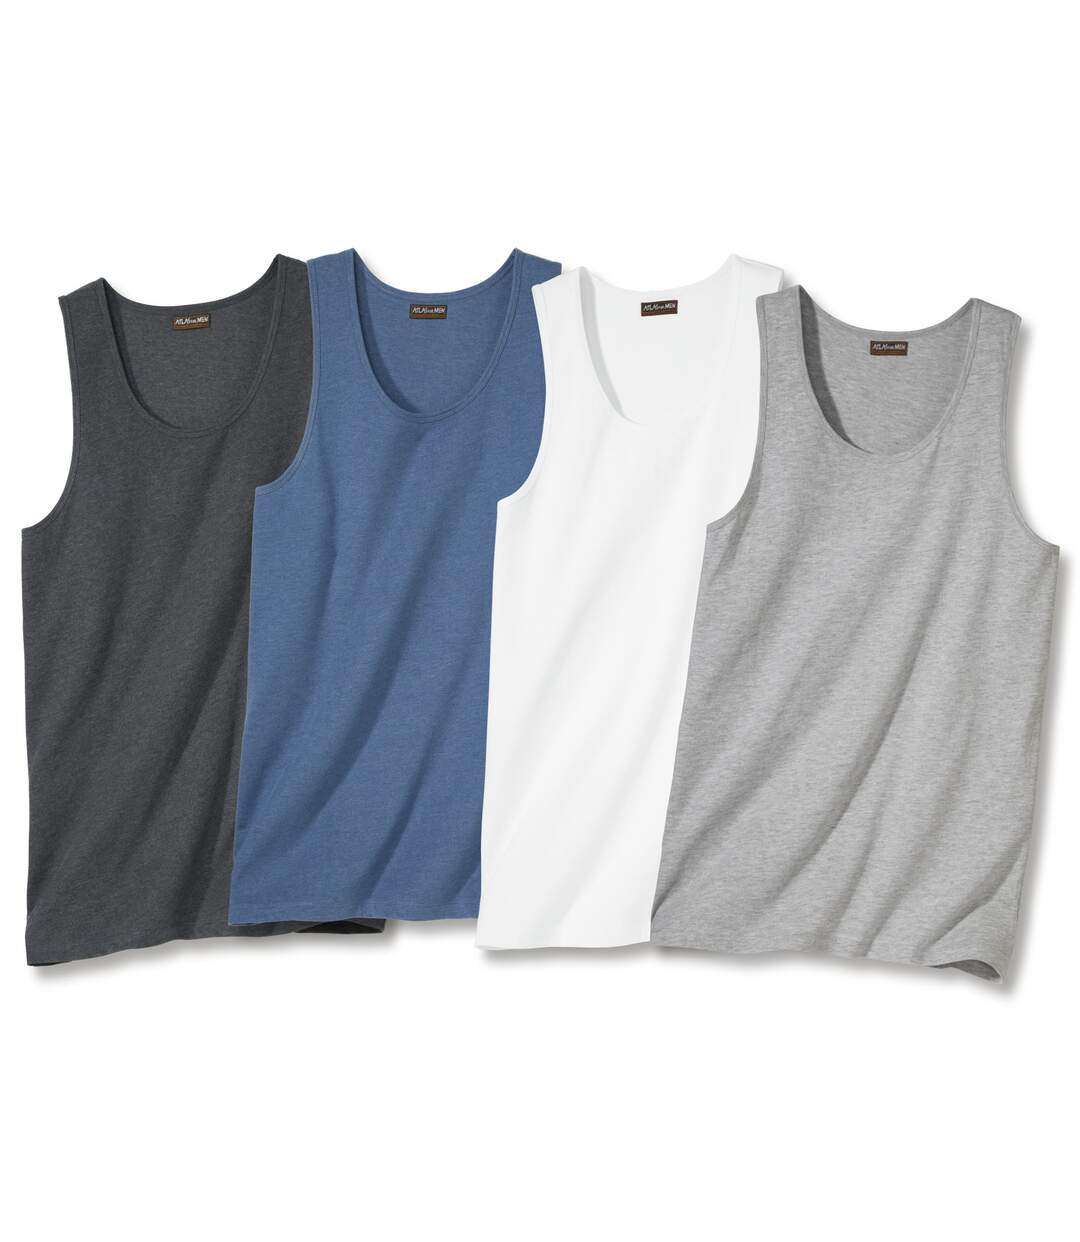 Pack of 4 Men's Classic Vests - Blue White Grey